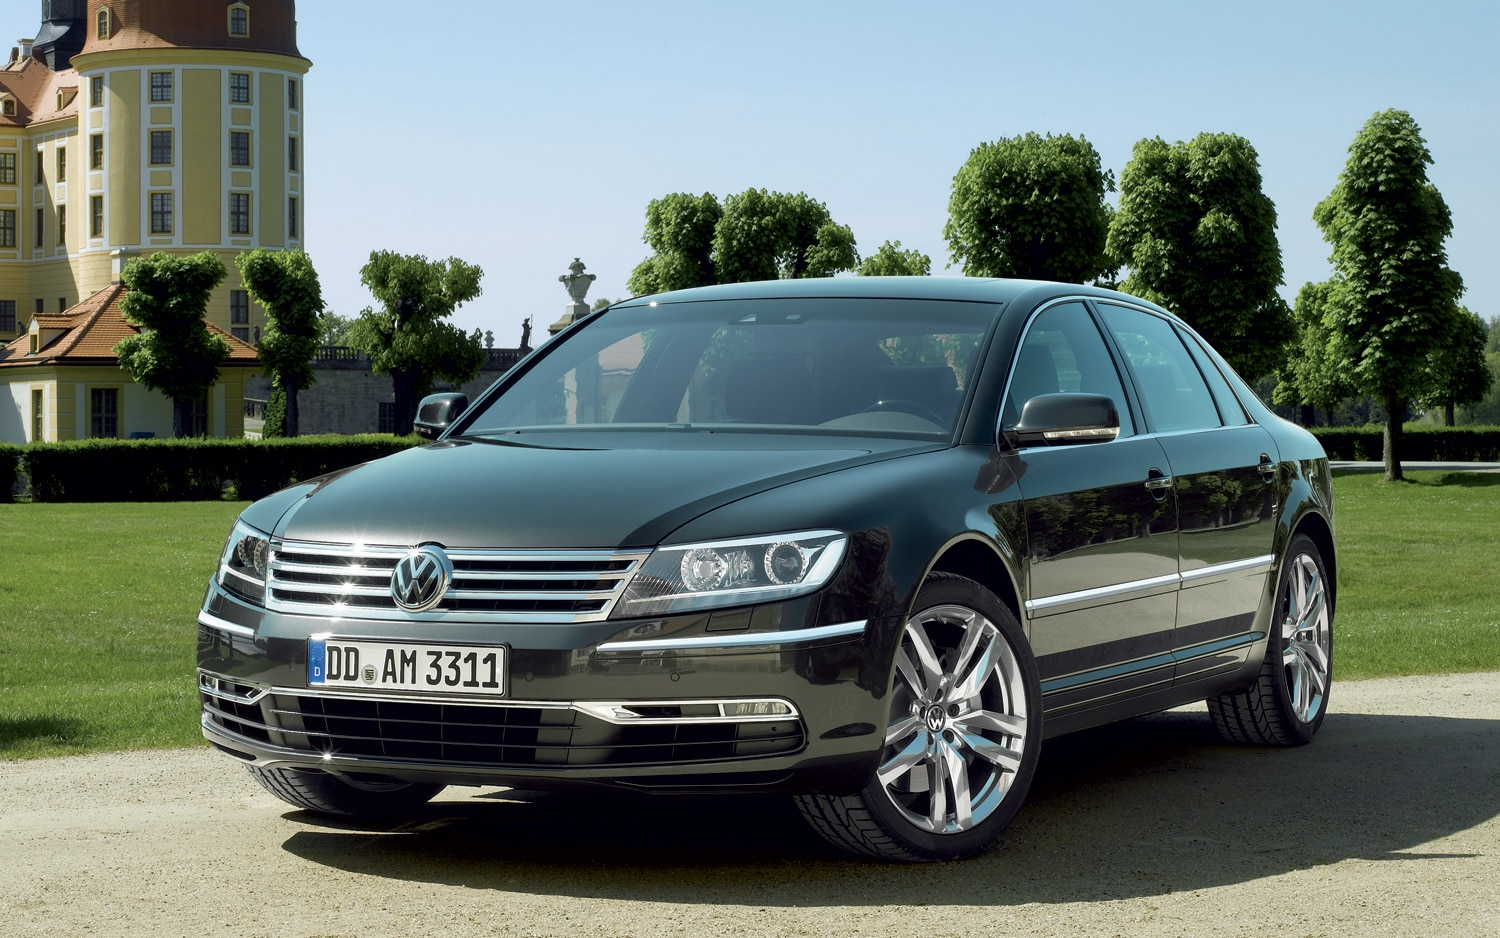 Report: Volkswagen Delays New Phaeton For Cost Reasons